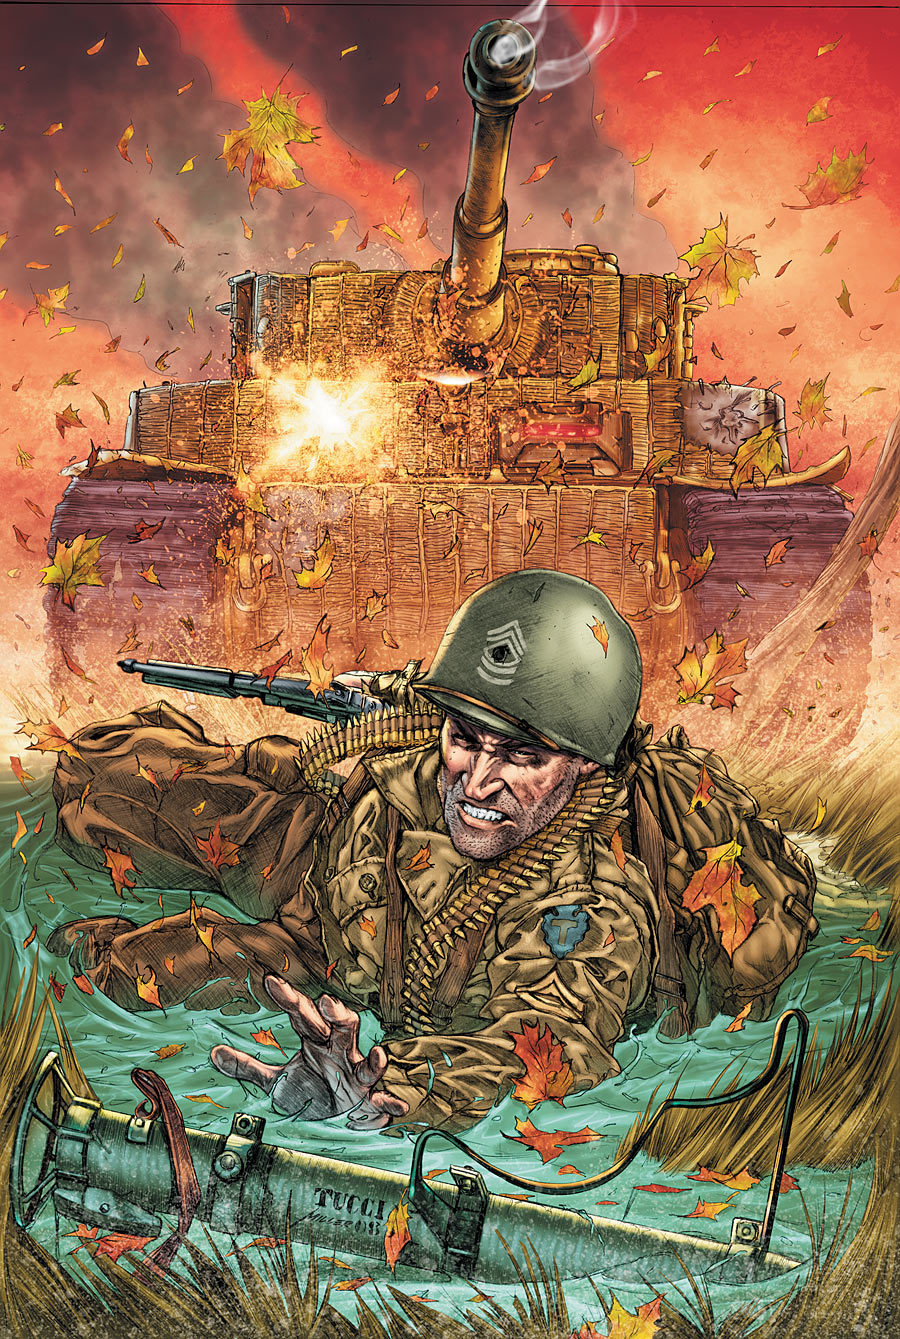 Sgt. Rock: The Lost Battalion Vol 1 4